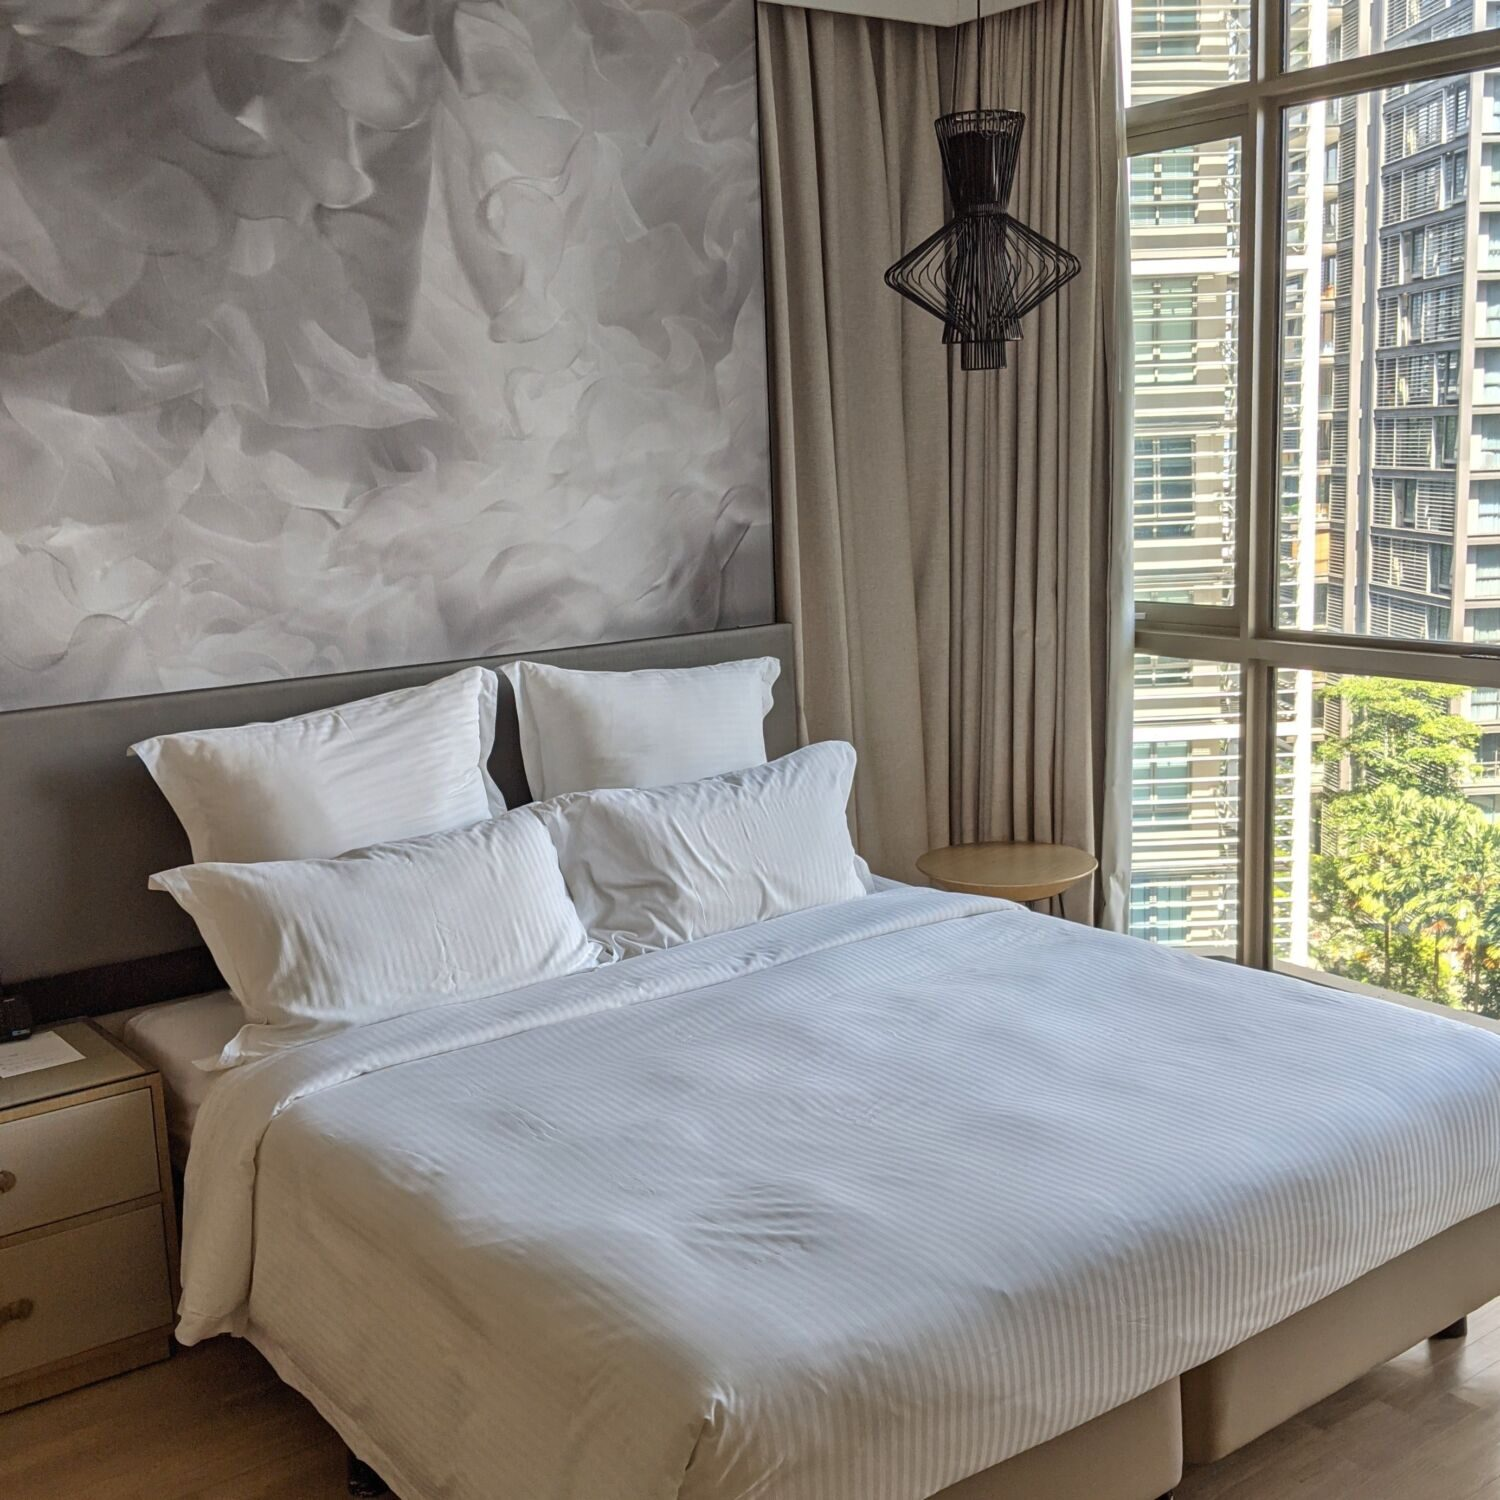 Ascott Orchard Singapore One-Bedroom Premier Suite Bedroom